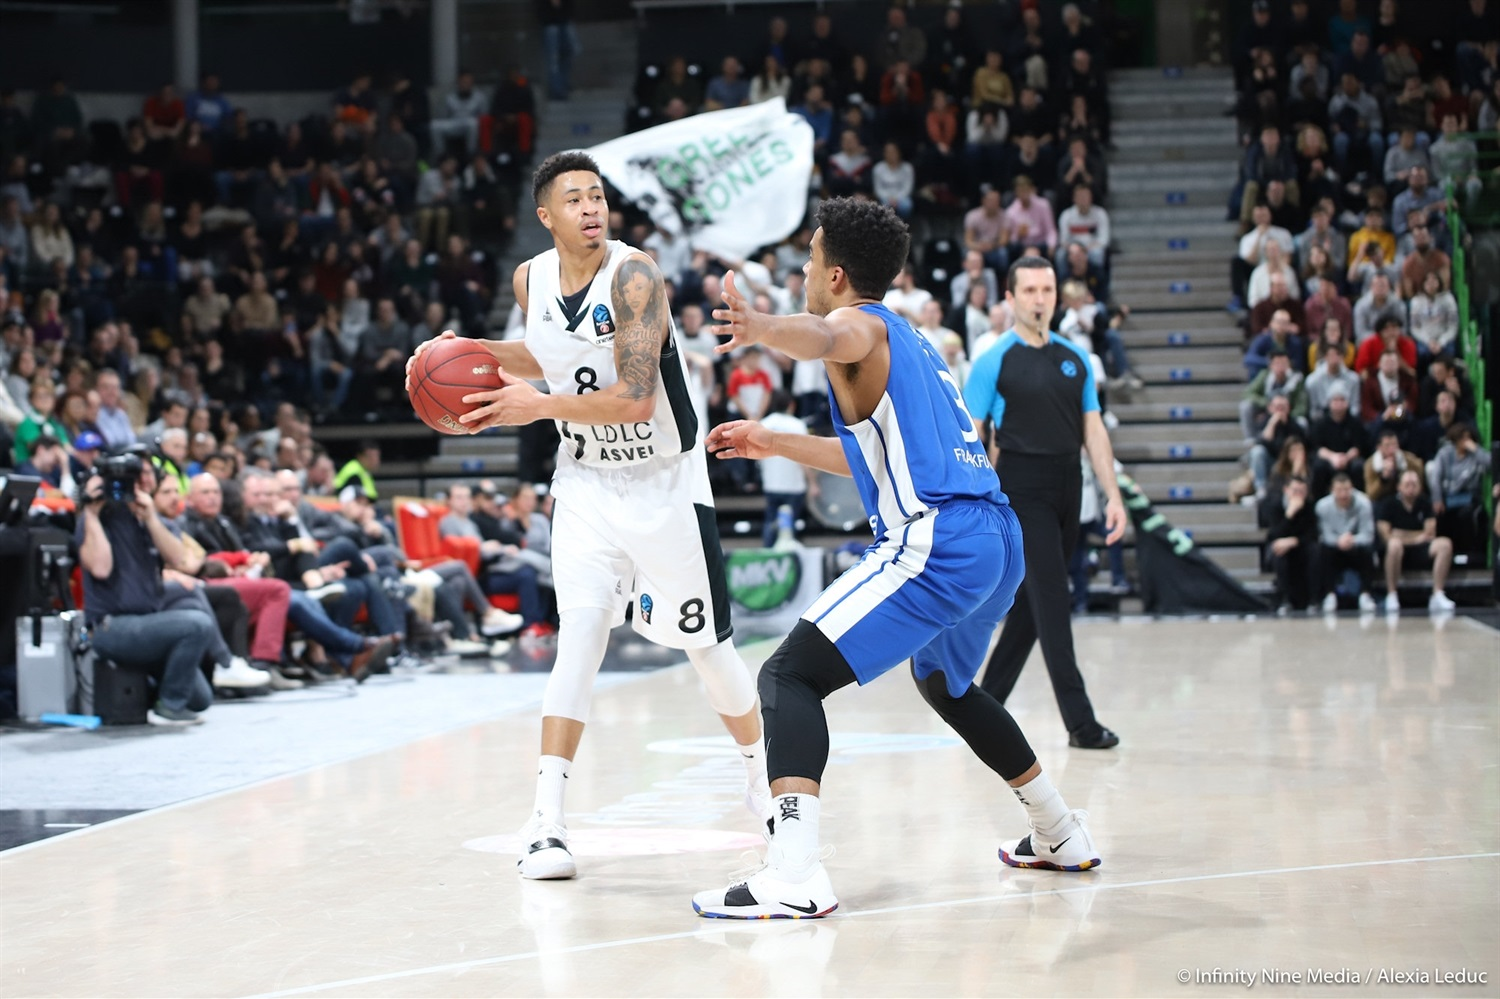 AJ Slaughter - LDLC ASVEL Villeurbanne (photo Infinity Nine Media - Alexia Leduc) - EC18